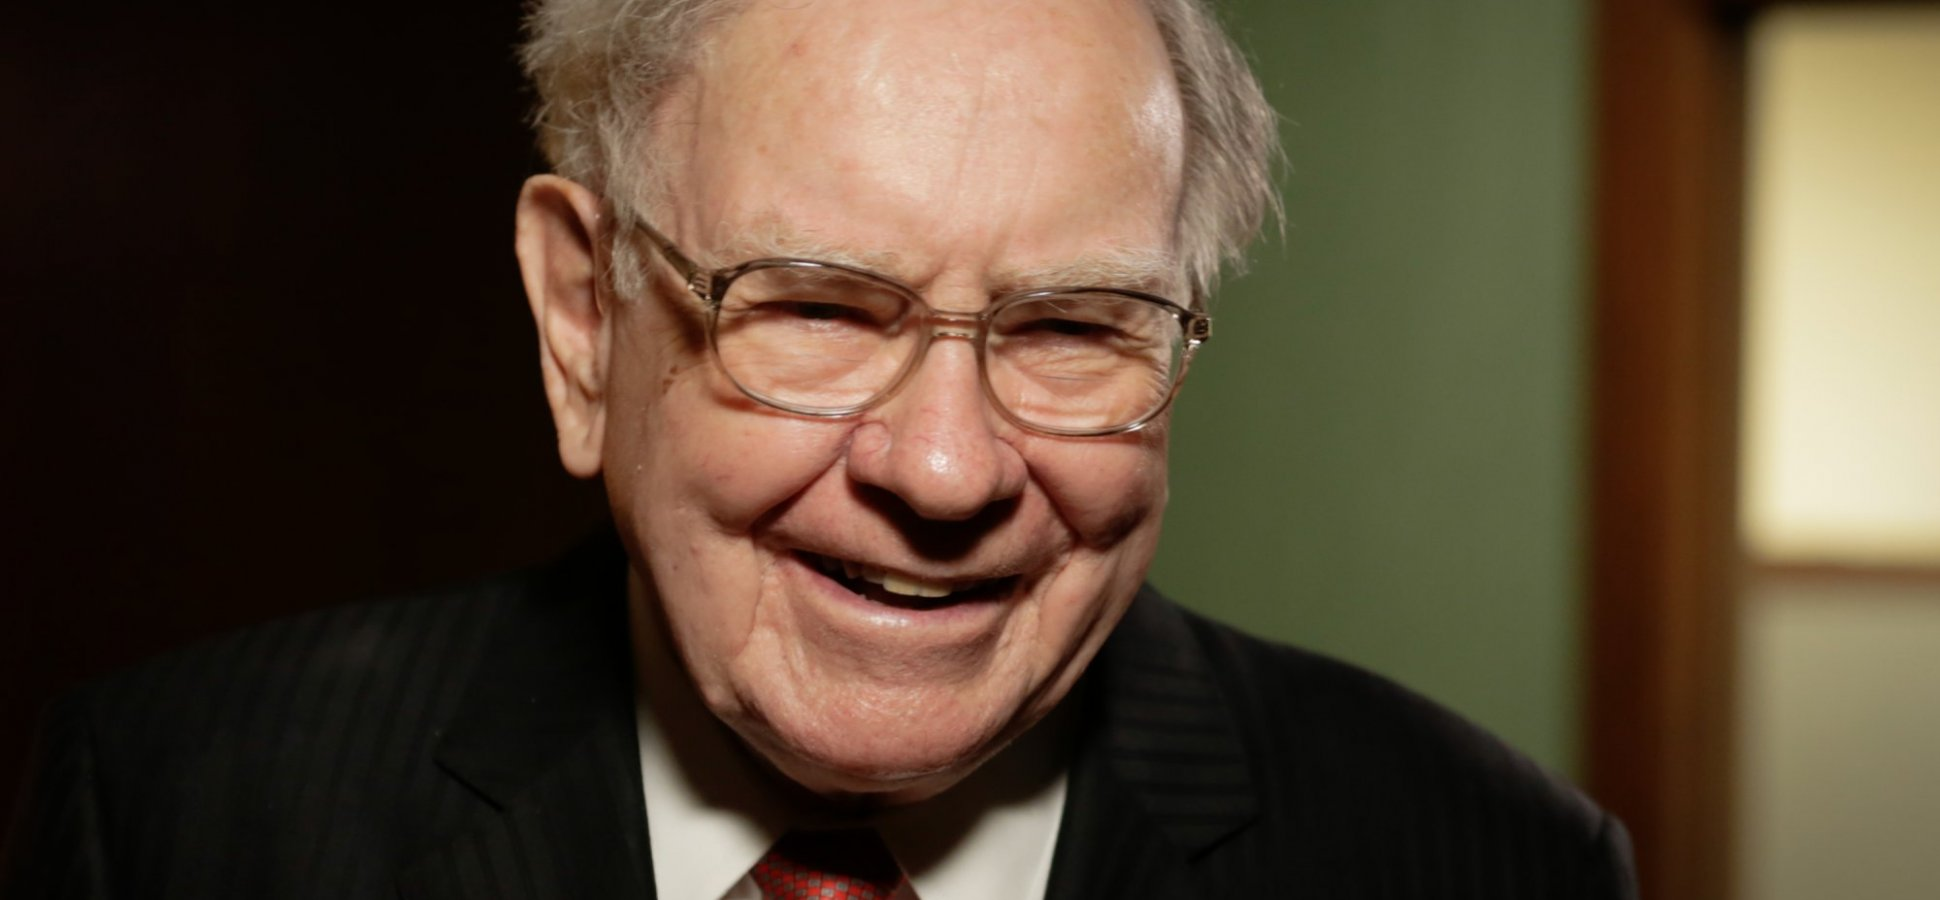 8 Lessons From Warren Buffett's Annual Shareholder Letter That Will Change the Way You Handle Your Money